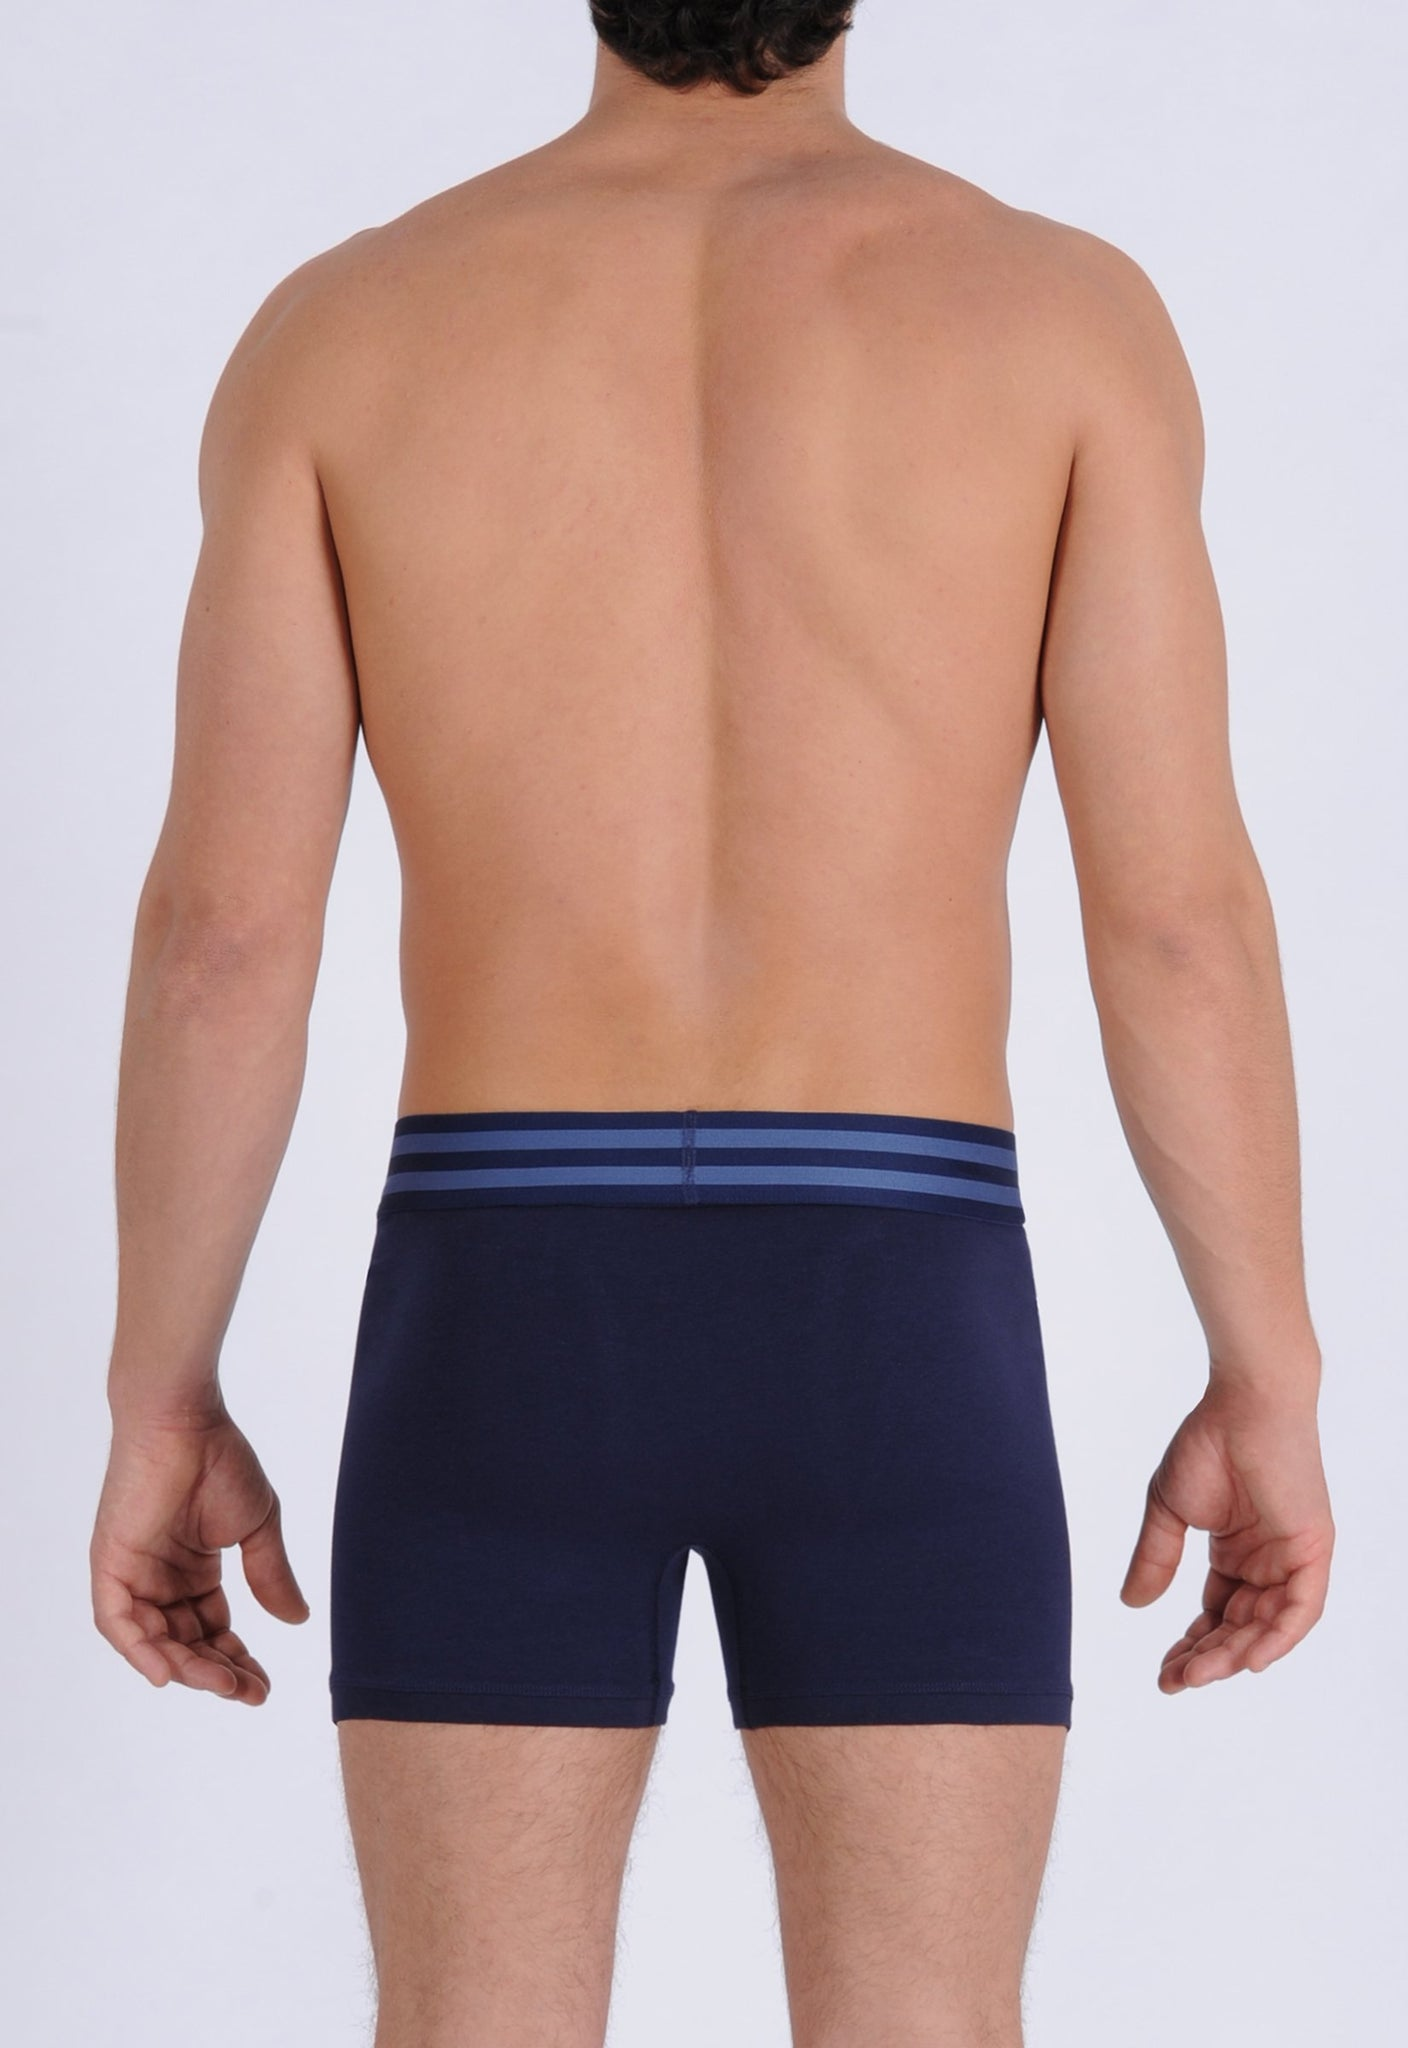 Ginch Gonch Signature Series - Boxer Brief - Navy Men's underwear boxer brief trunk printed waistband back